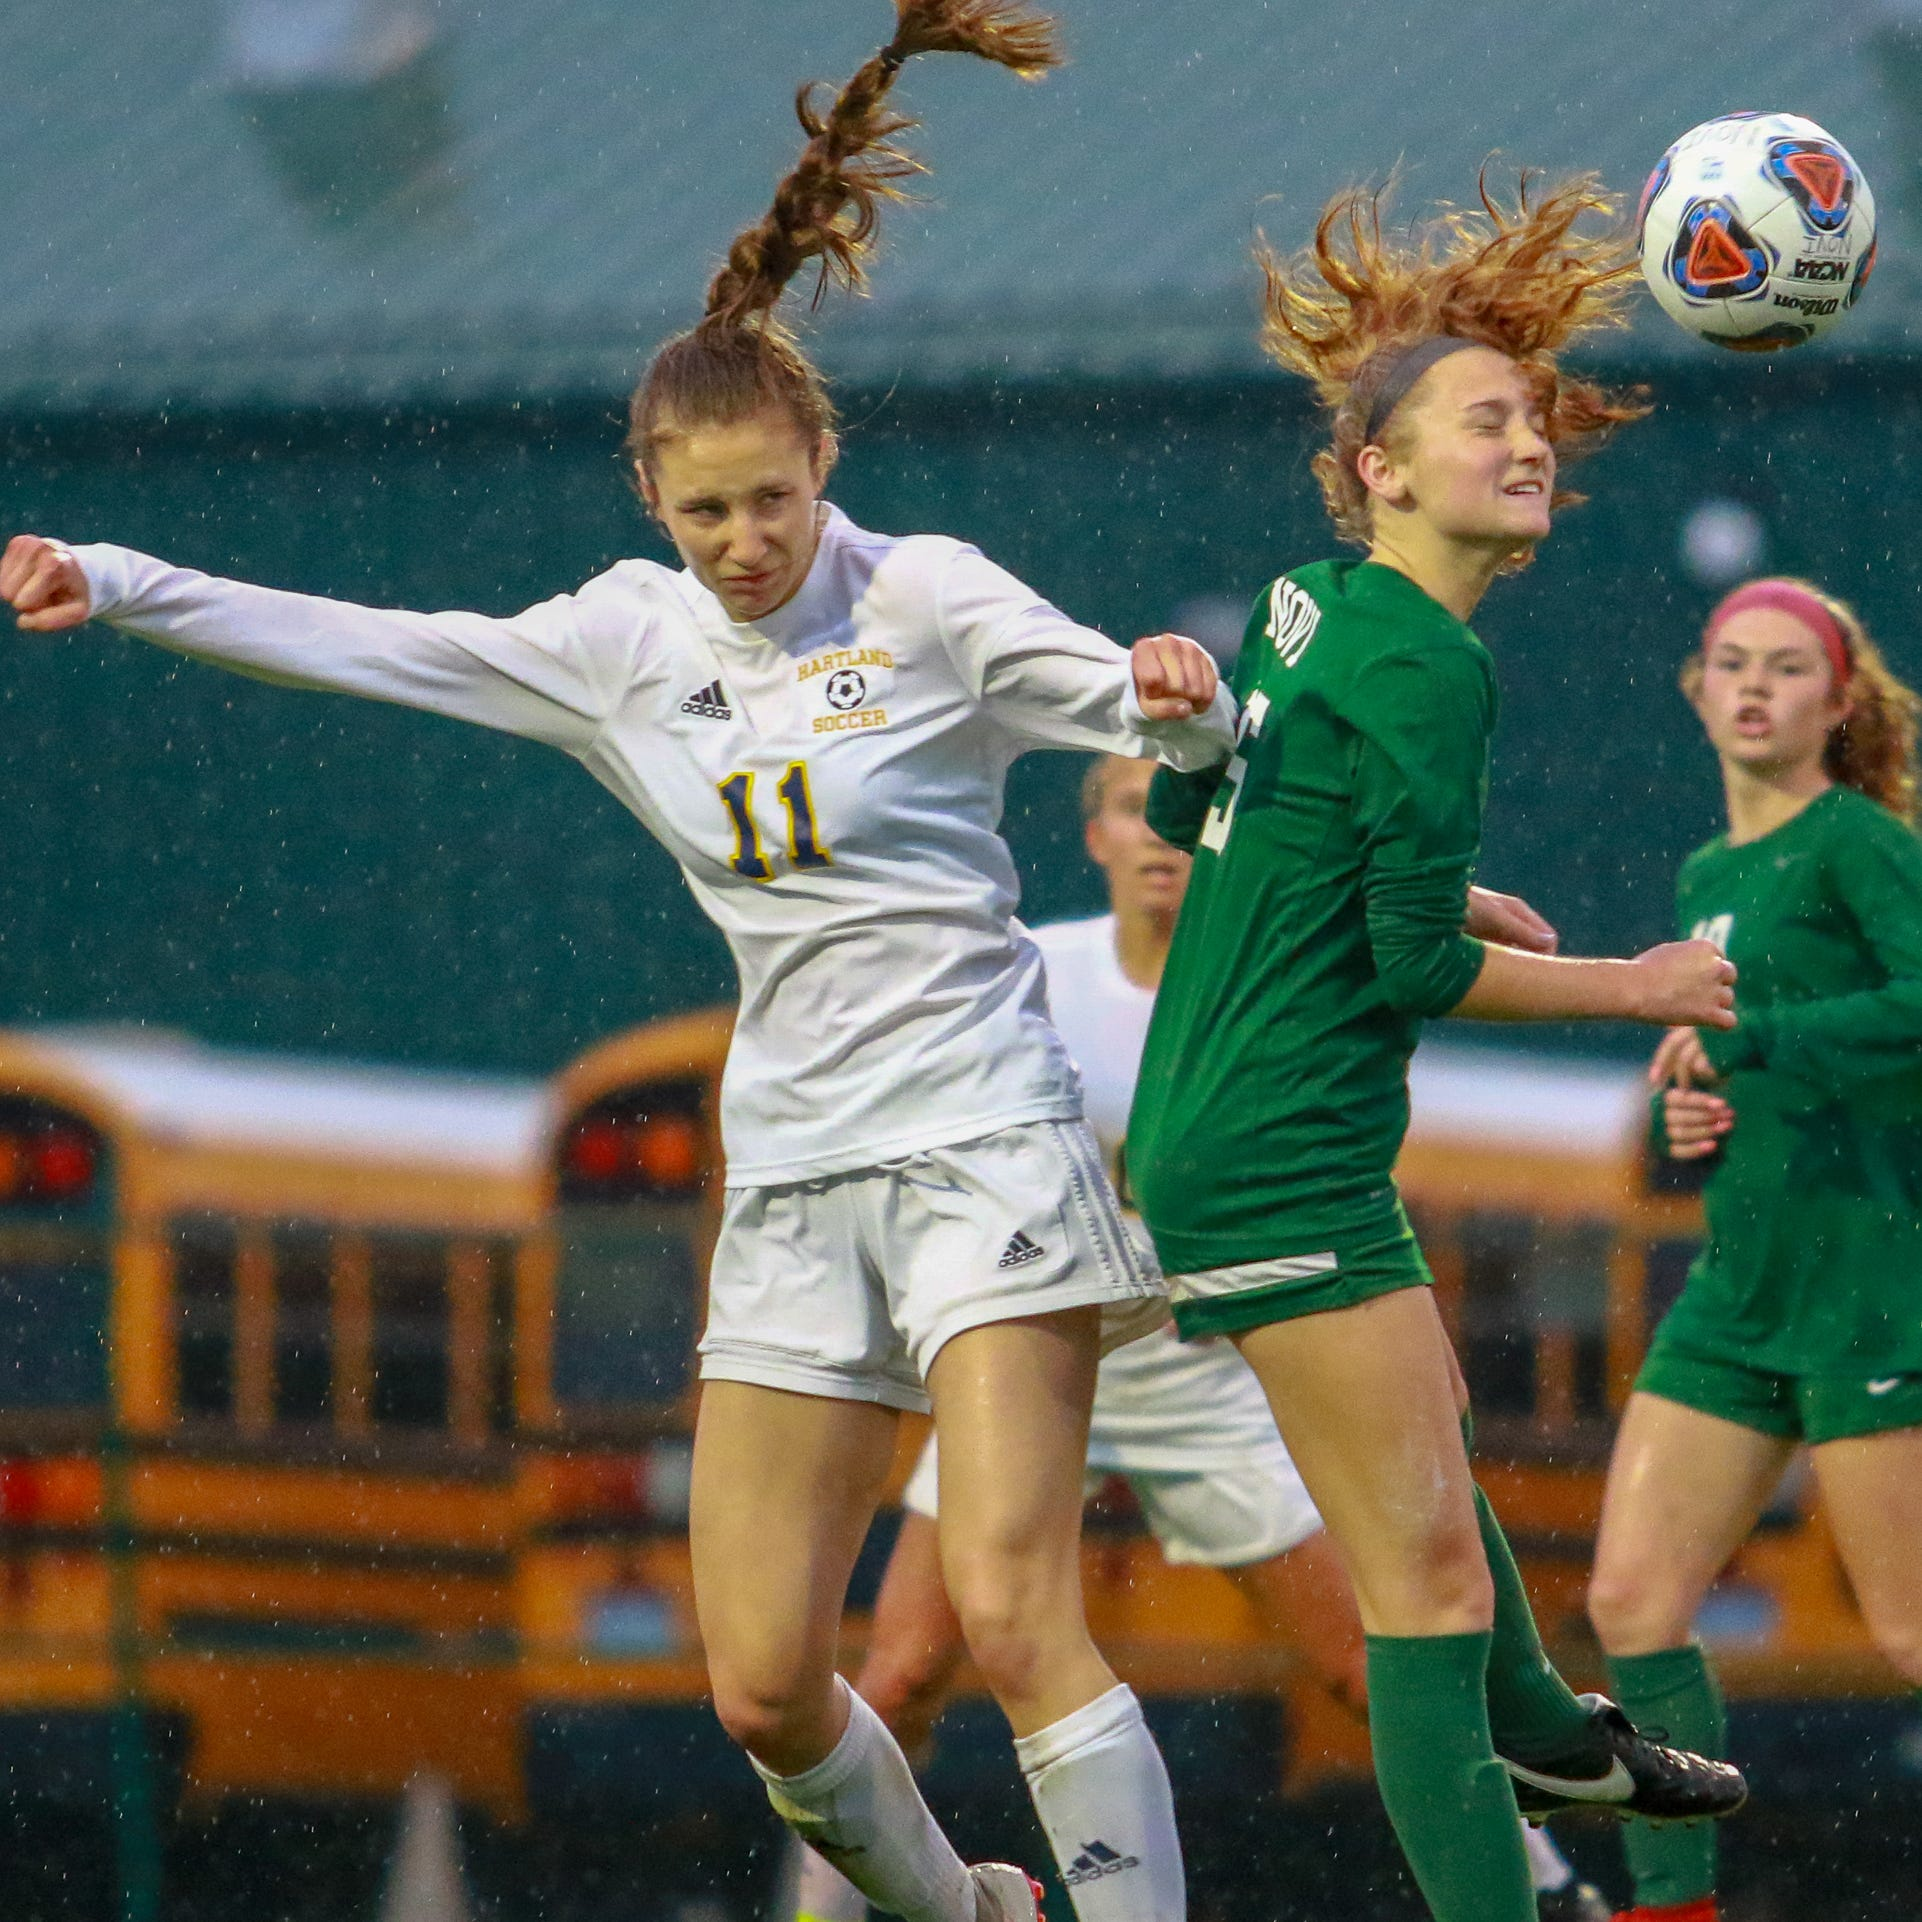 No. 6 Hartland looks to regroup after first soccer loss to No. 1 Novi